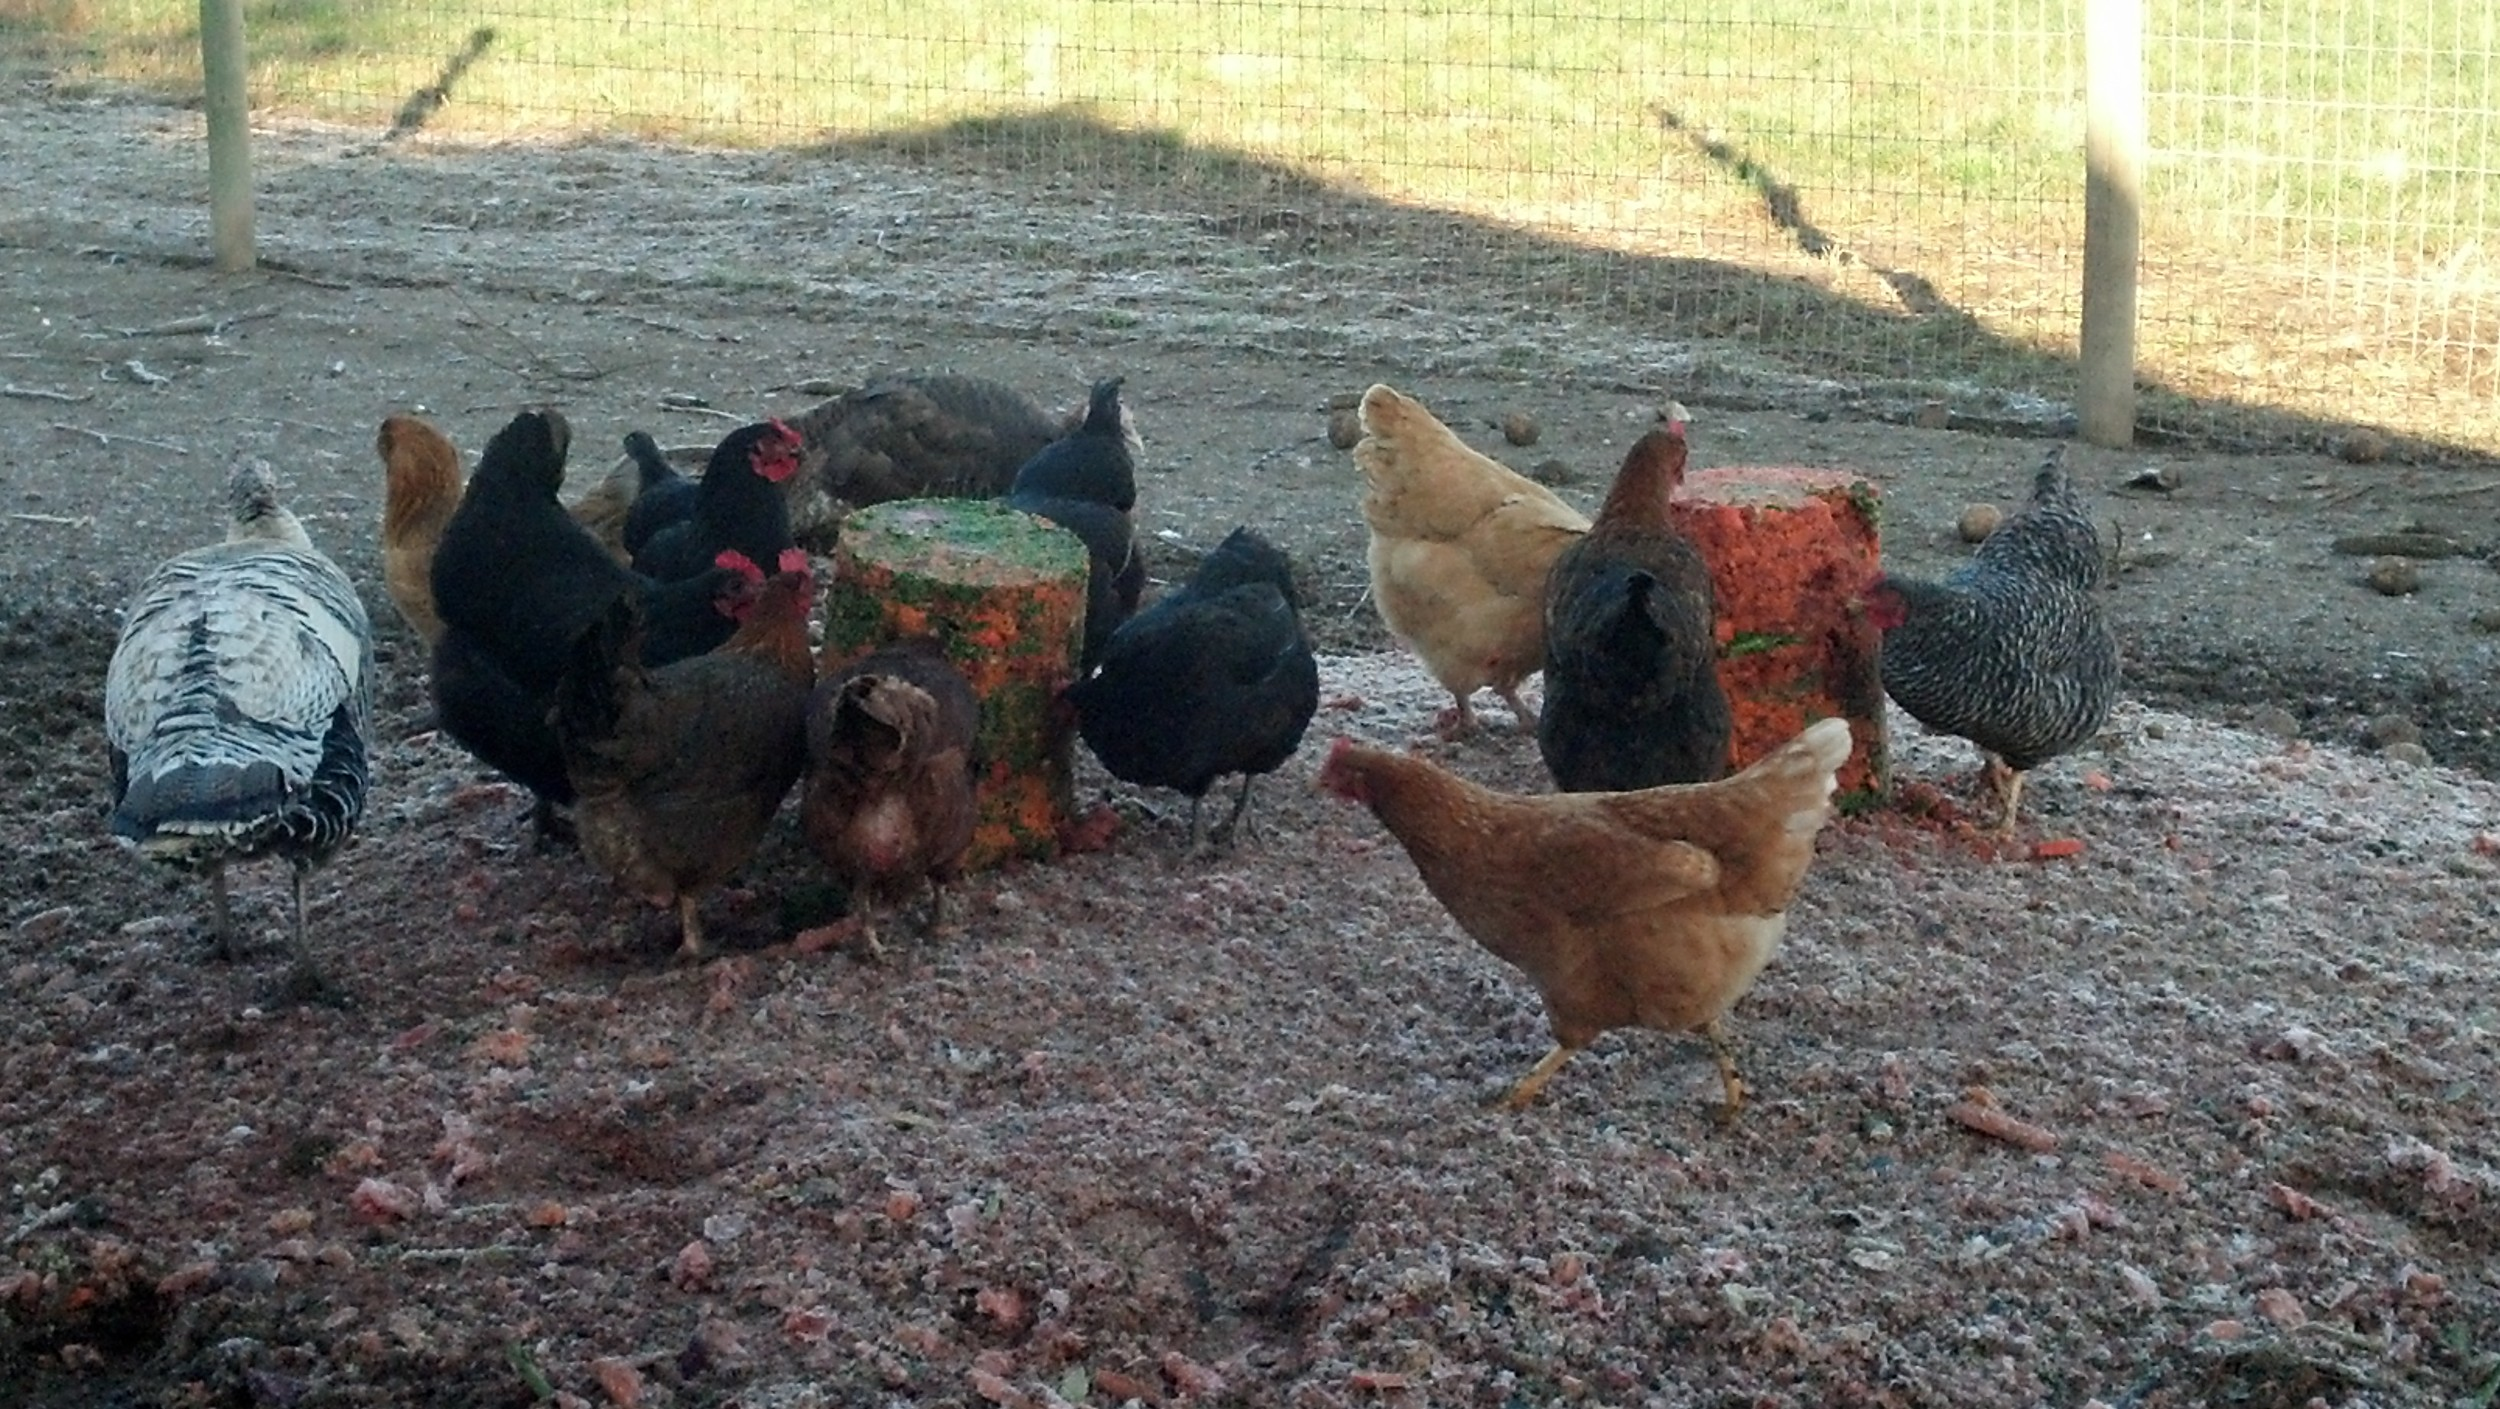 Turkeys and chickens enjoying a bucket of juice pressings from our friends at  Portland Juice Press  before being turned out to range in the grass field.